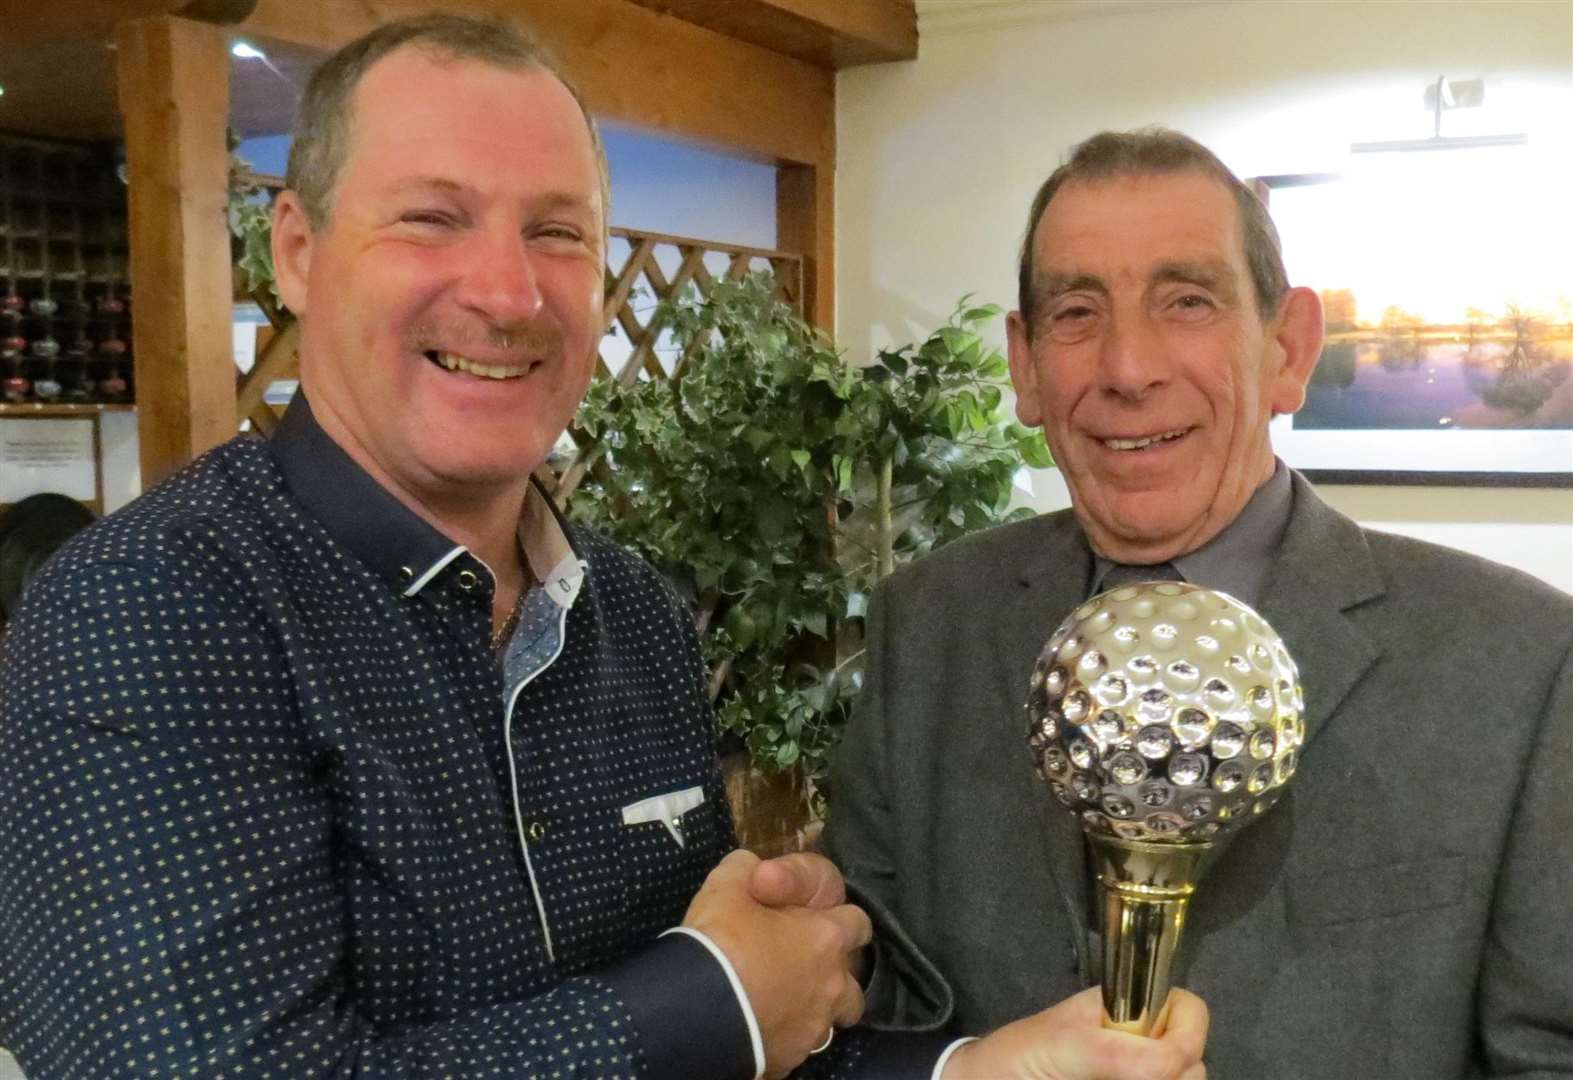 Corby is Senior Golfer of the Year – again